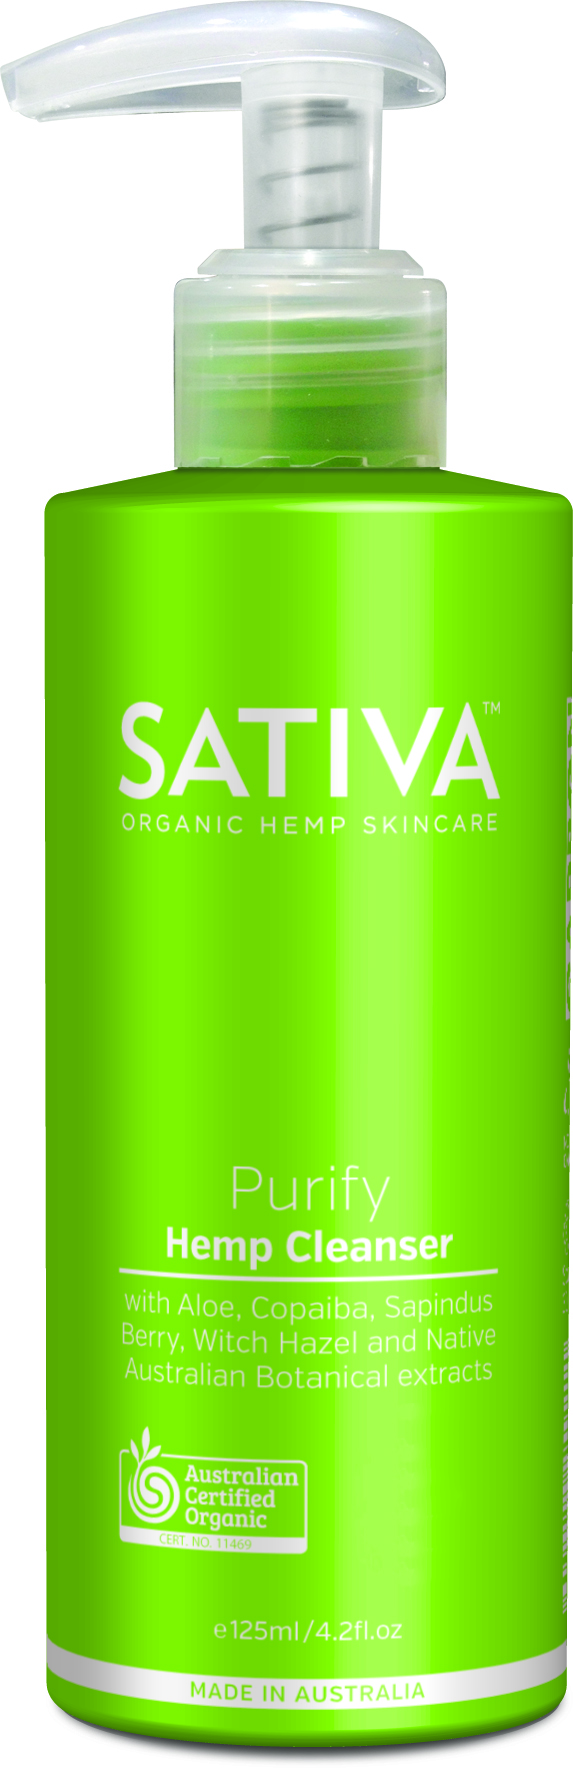 SATIVA Purify Hemp Cleanser